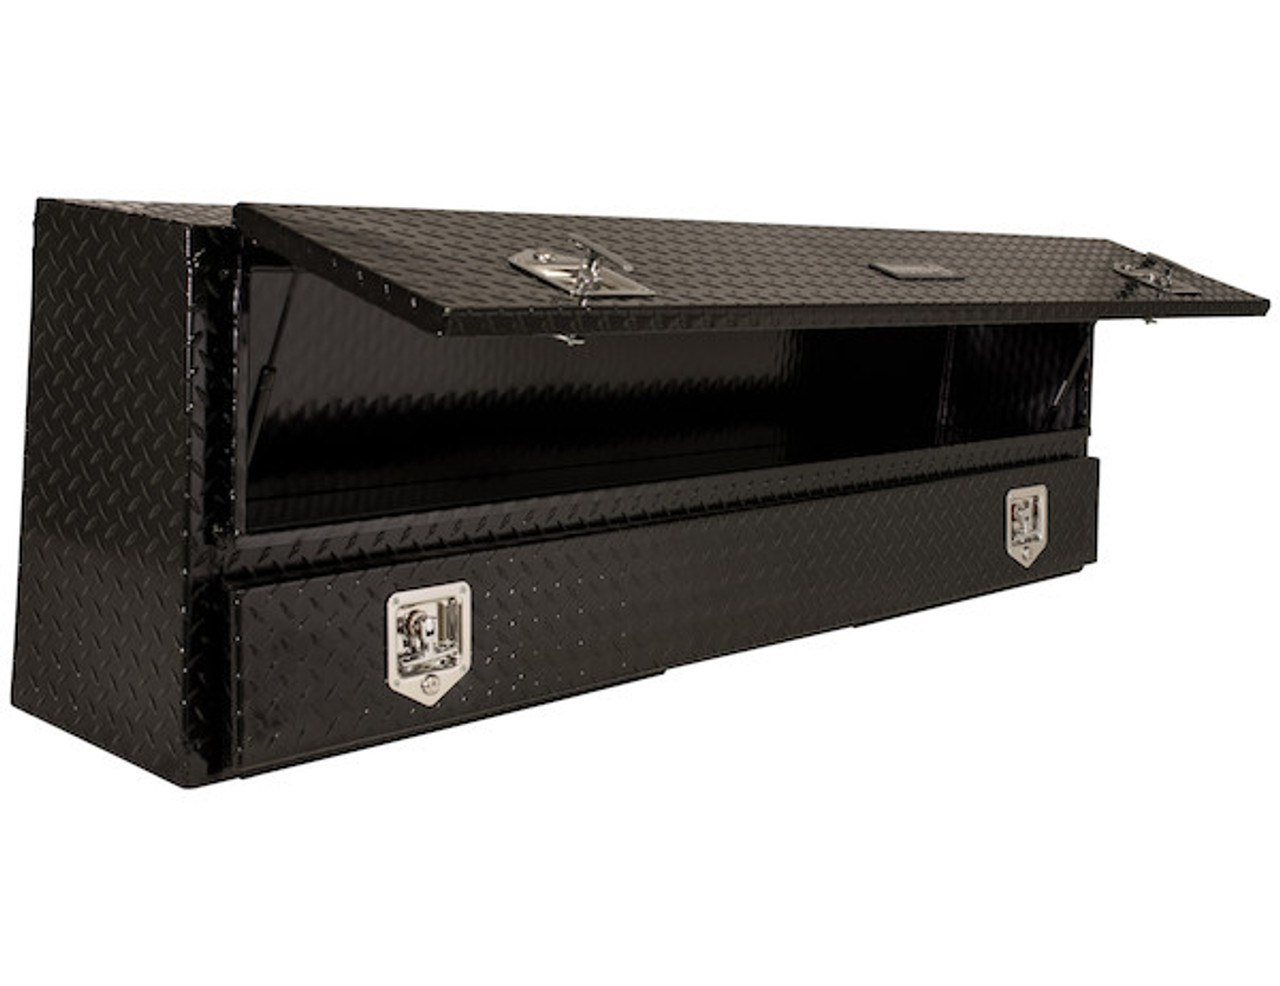 "1725650 BUYERS PRODUCTS BLACK DIAMOND TREAD ALUMINUM CONTRACTOR TRUCK TOOL BOX 21""HX13.5""DX88""W"